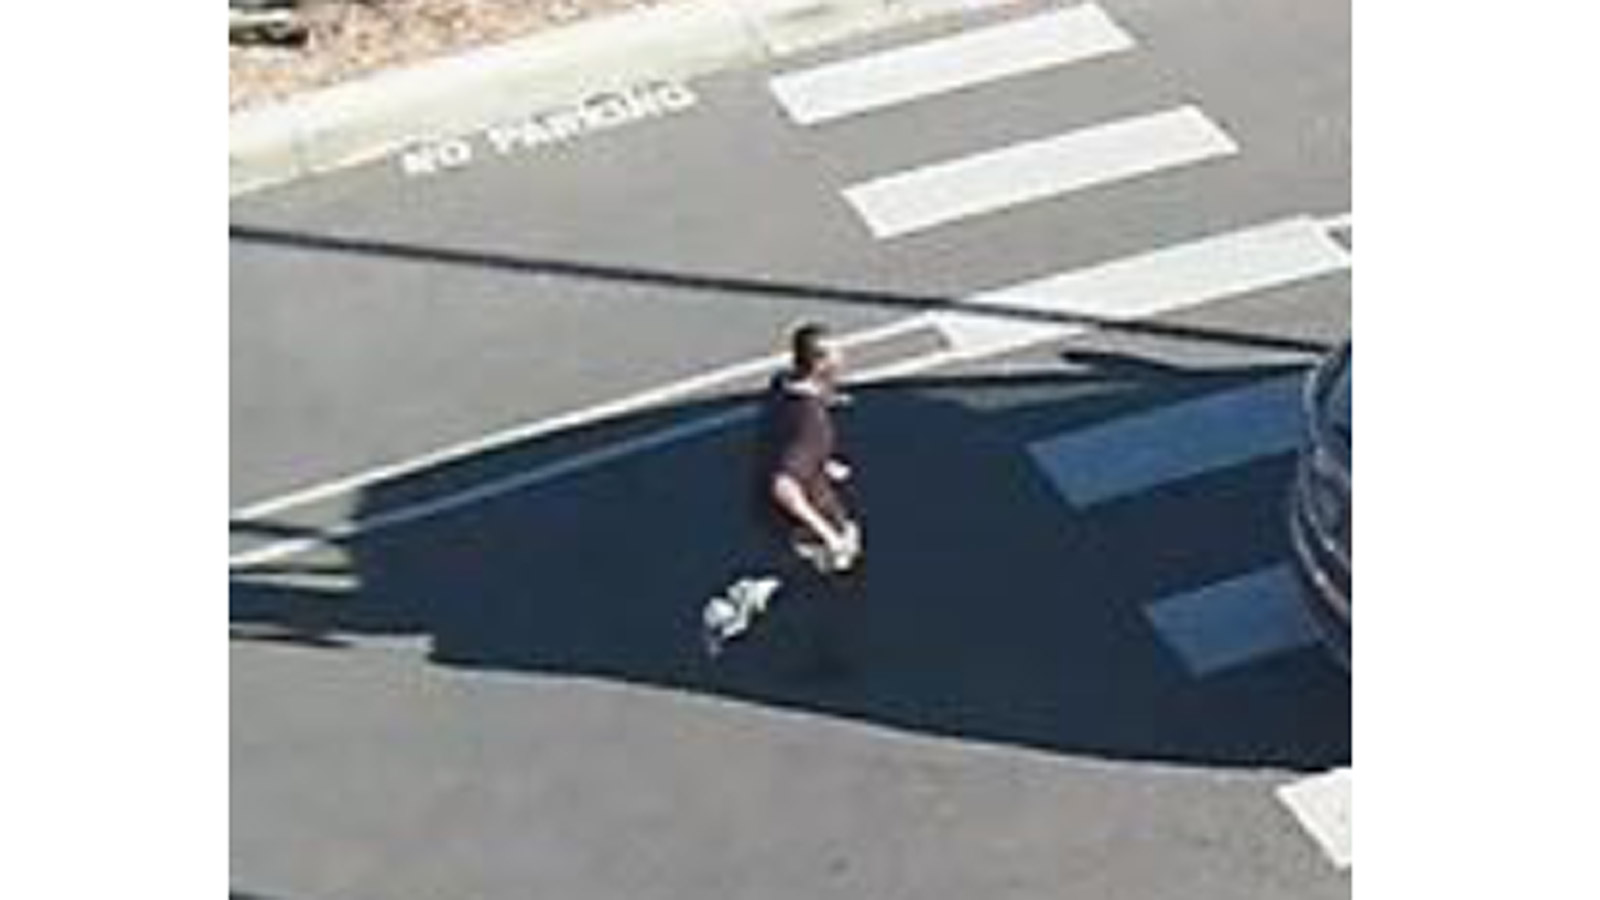 Police in Denver are searching for a man who tried to steal a vehicle on Jan. 17 near the Denver School of the Arts. (credit: Denver Police)